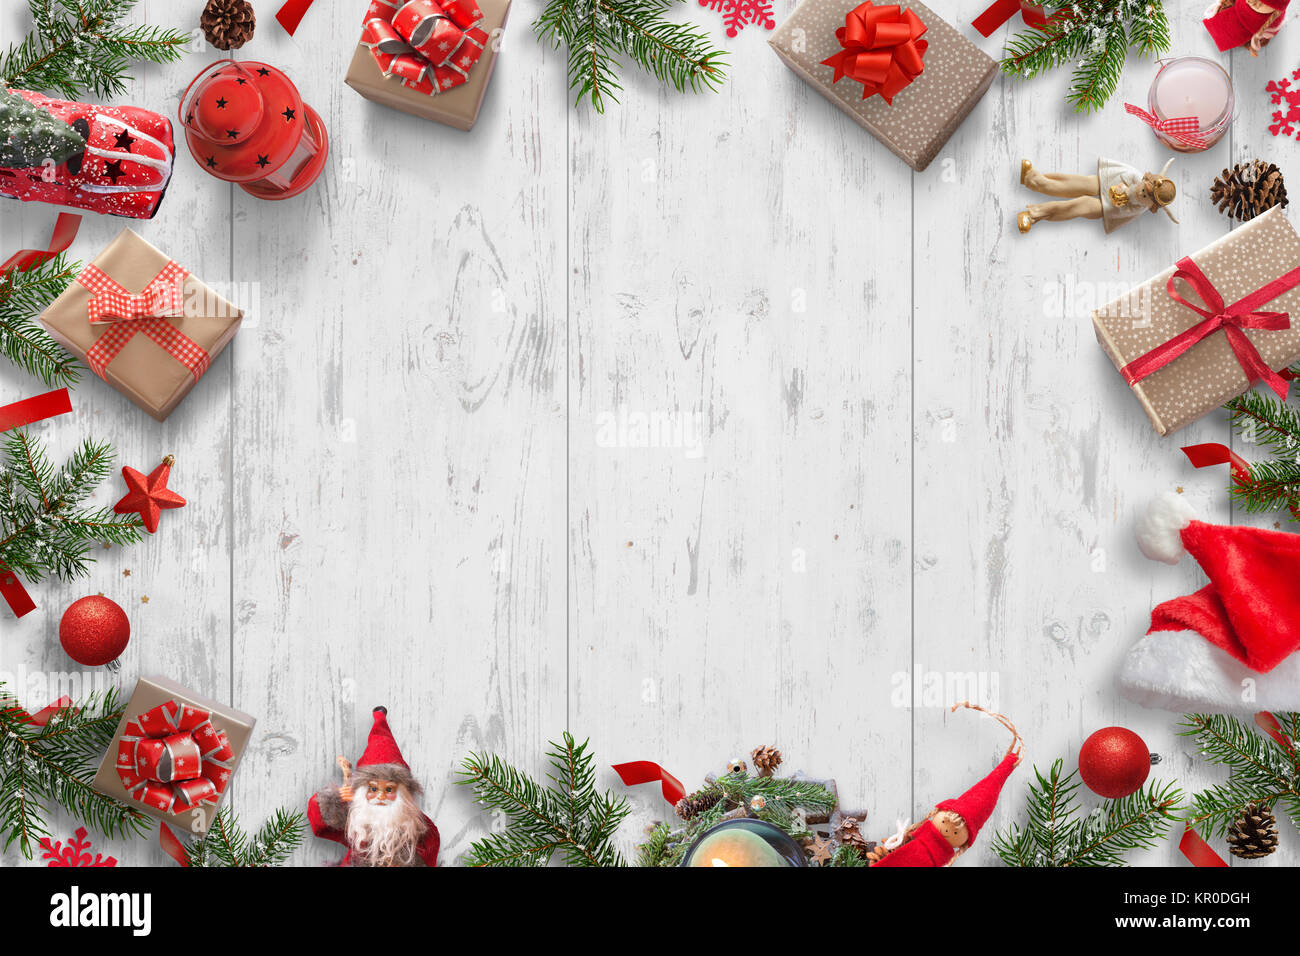 Christmas Background Pic.Christmas Background On White Wooden Desk With Christmas